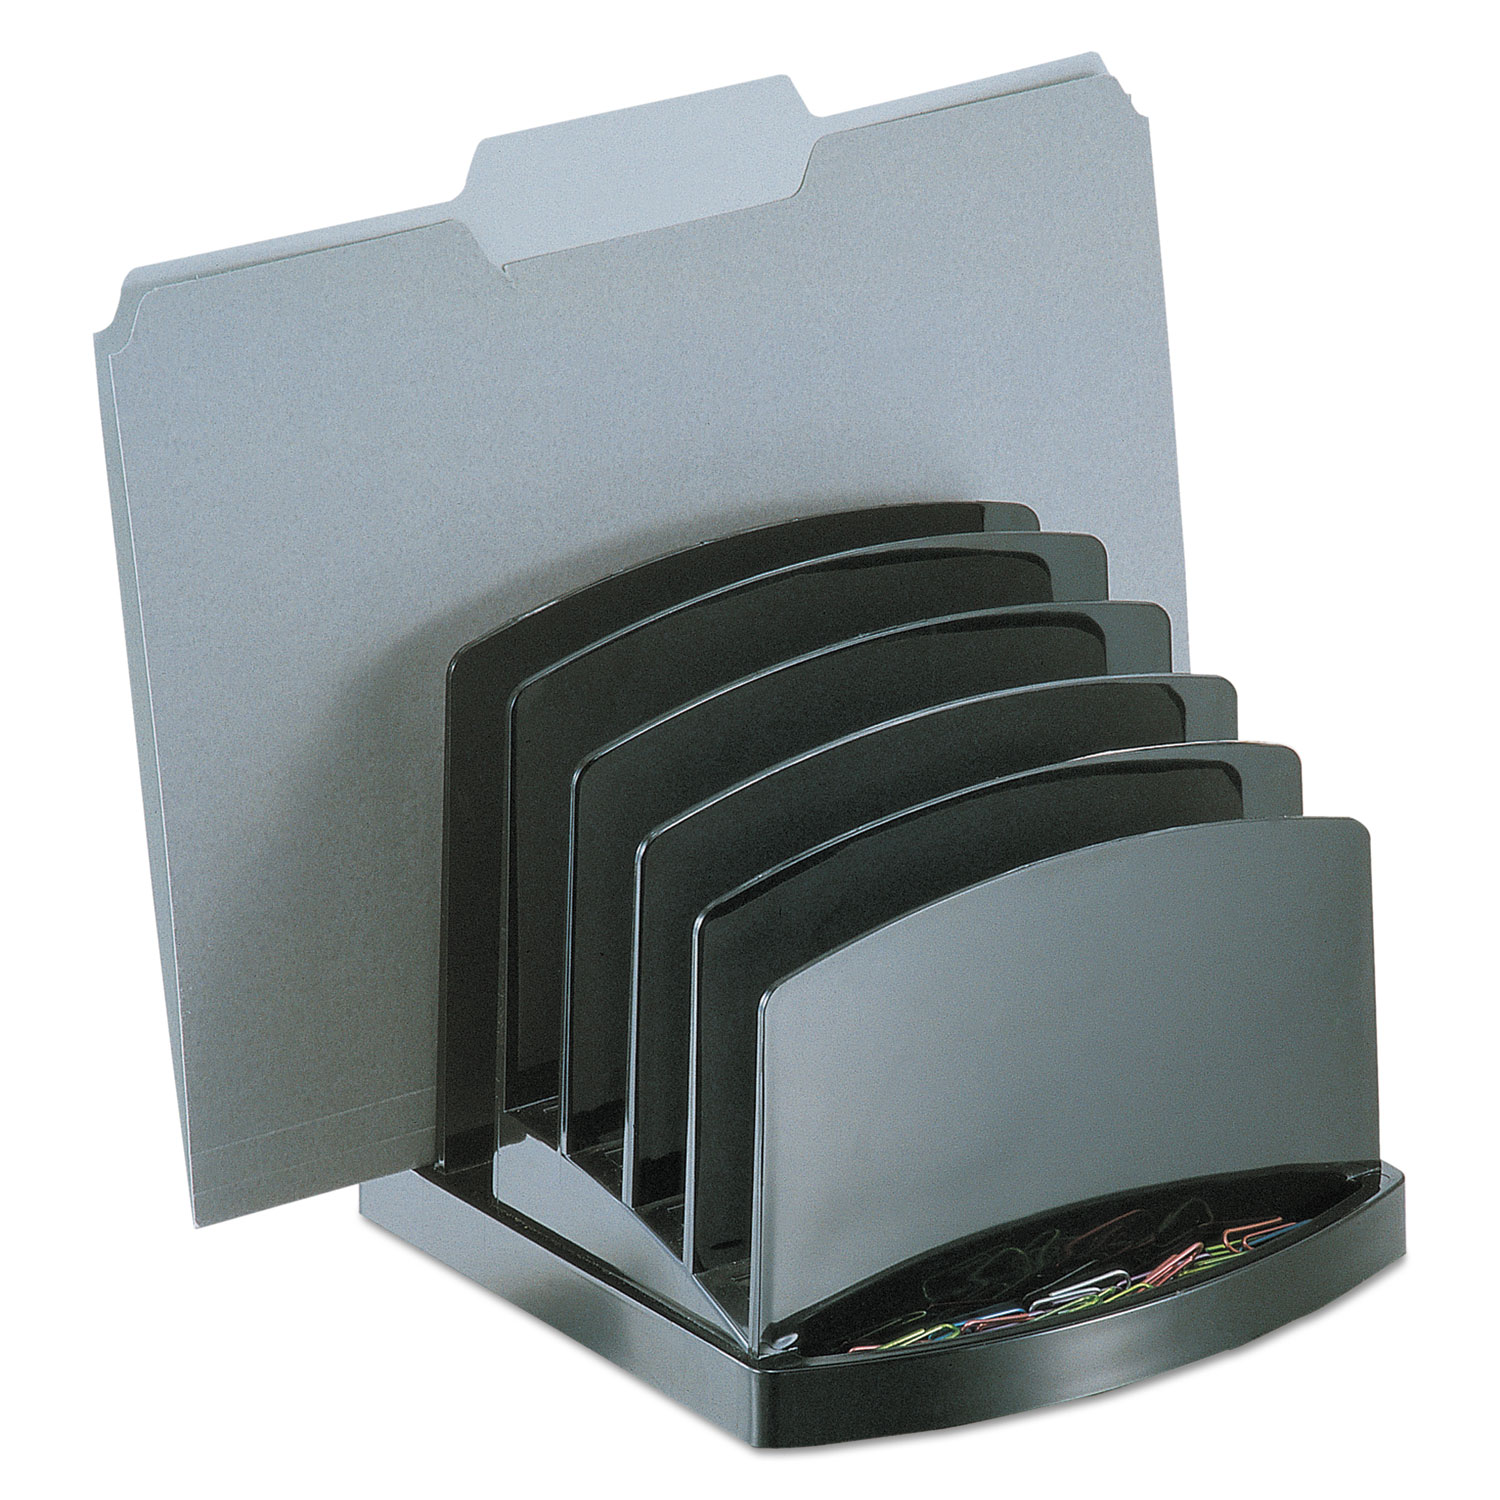 """Incline Sorter, 6 Sections, Letter to Legal Size Files, 7.5"""" x 7.5"""" x 6.4"""", Black"""